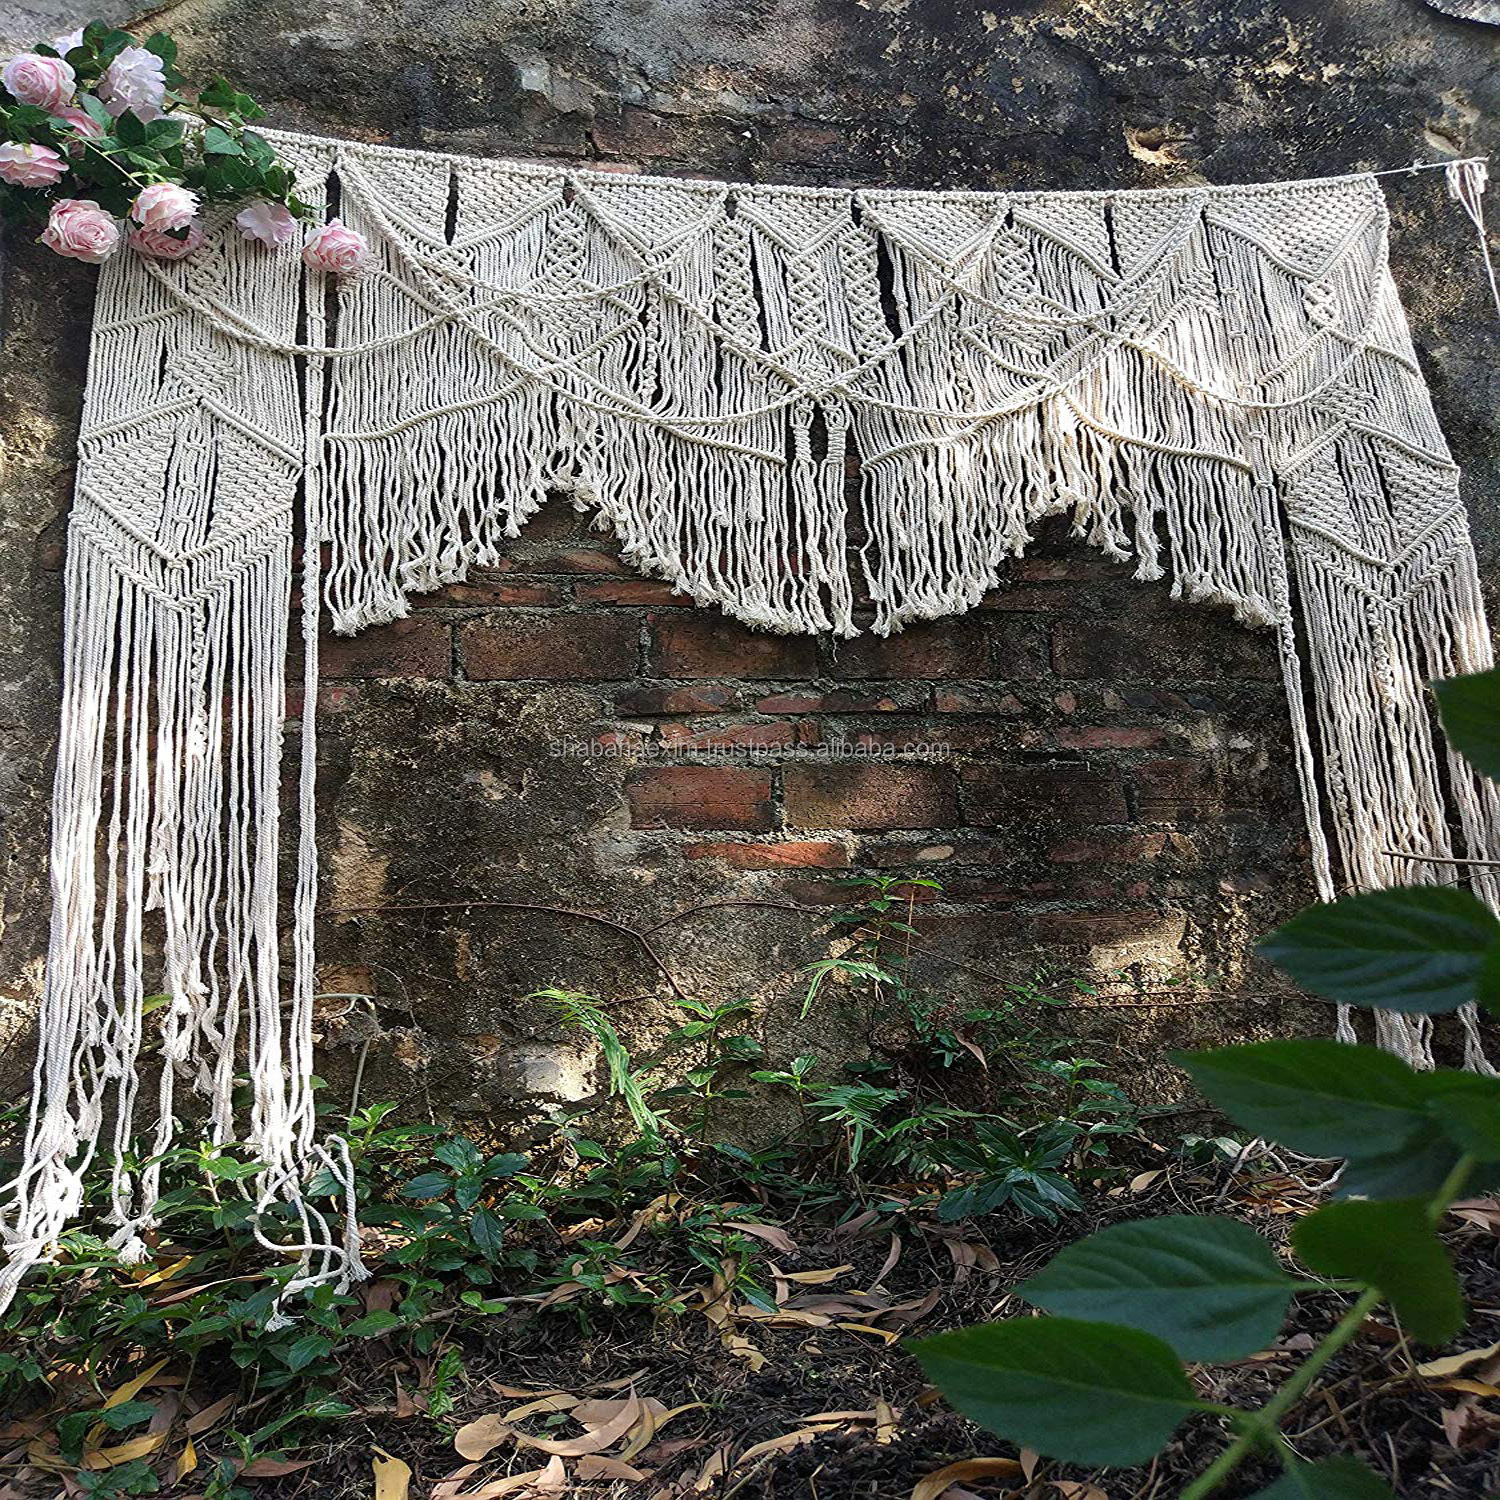 Large Macrame Wedding Backdrop Decoration Outdoors Customizable Macrame Curtain Room Divider Boho Wall Hanging Buy Large Macrame Wedding Backdrop Decoration Outdoors Christmas Wedding Backdrop Boho Cotton Macrame Wall Hanging Product On Alibaba Com